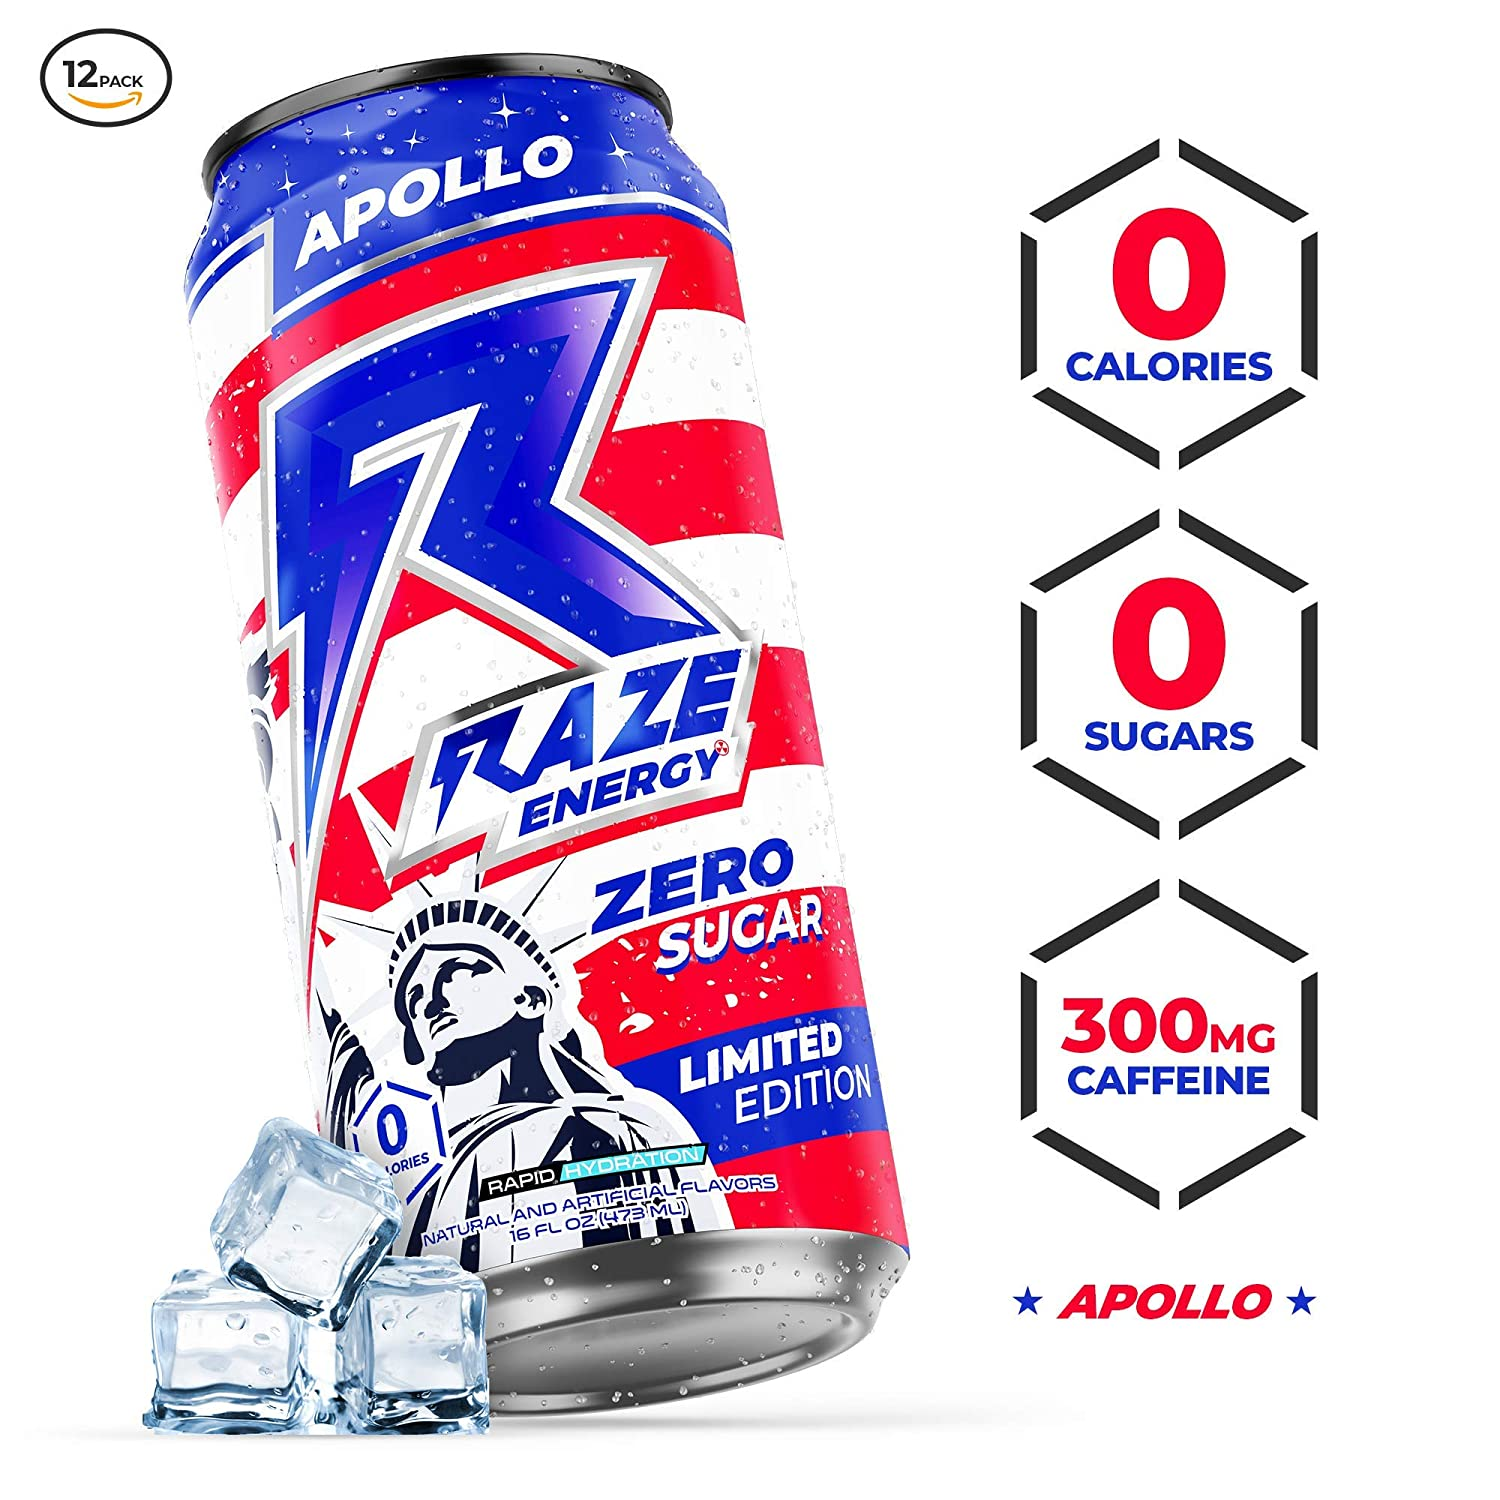 Raze Energy Drink | Performance and Hydration | Sugar Free, Zero Calorie Energy Drink - Apollo 12 Pack